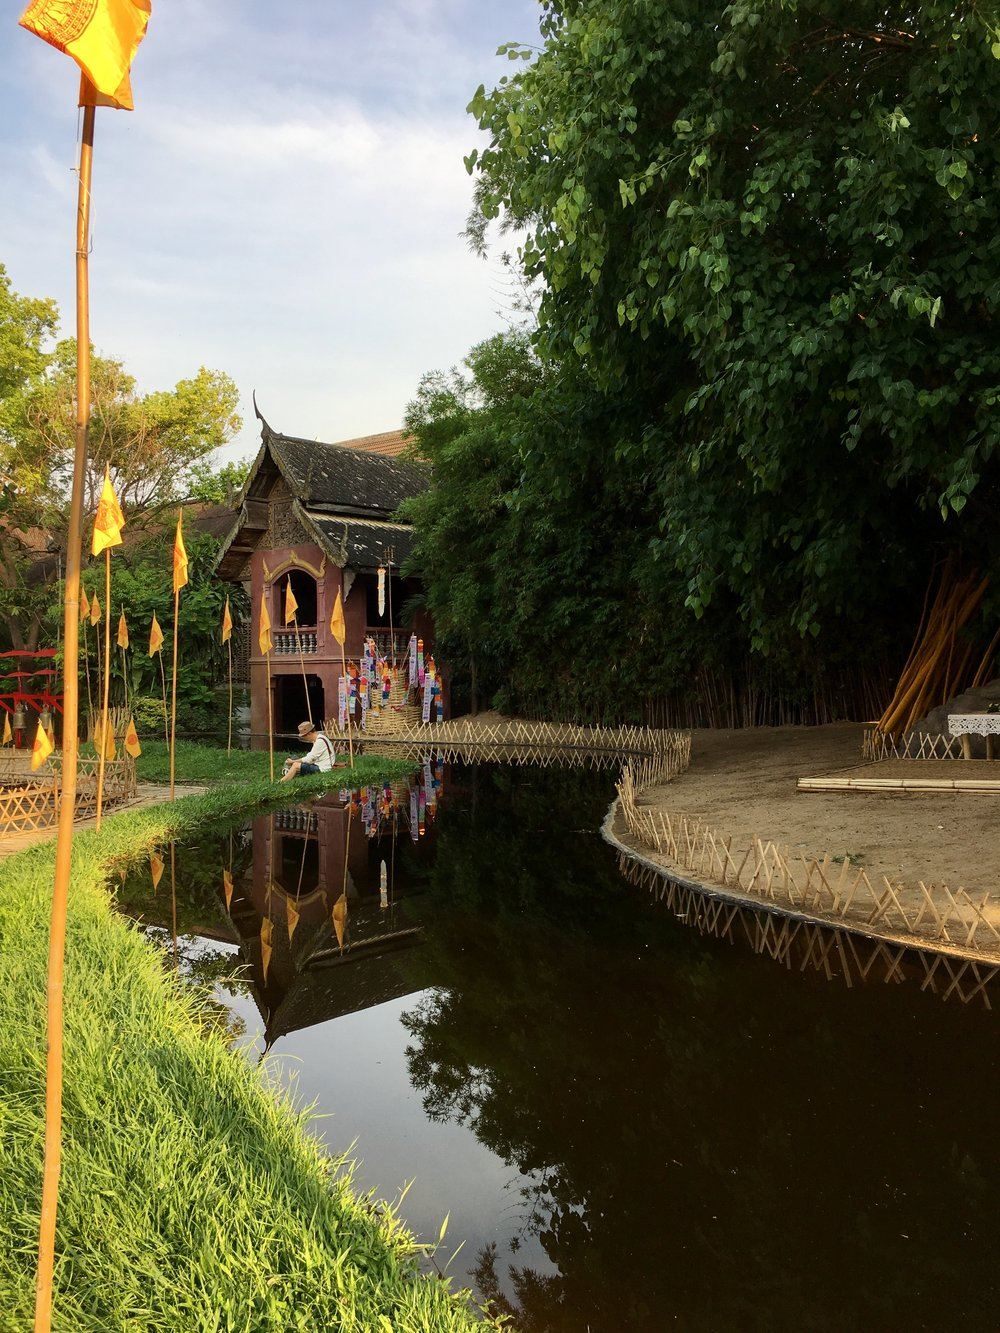 End your adventure exploring Wat Phra Singh with a stroll down the bizarre bamboo walkway